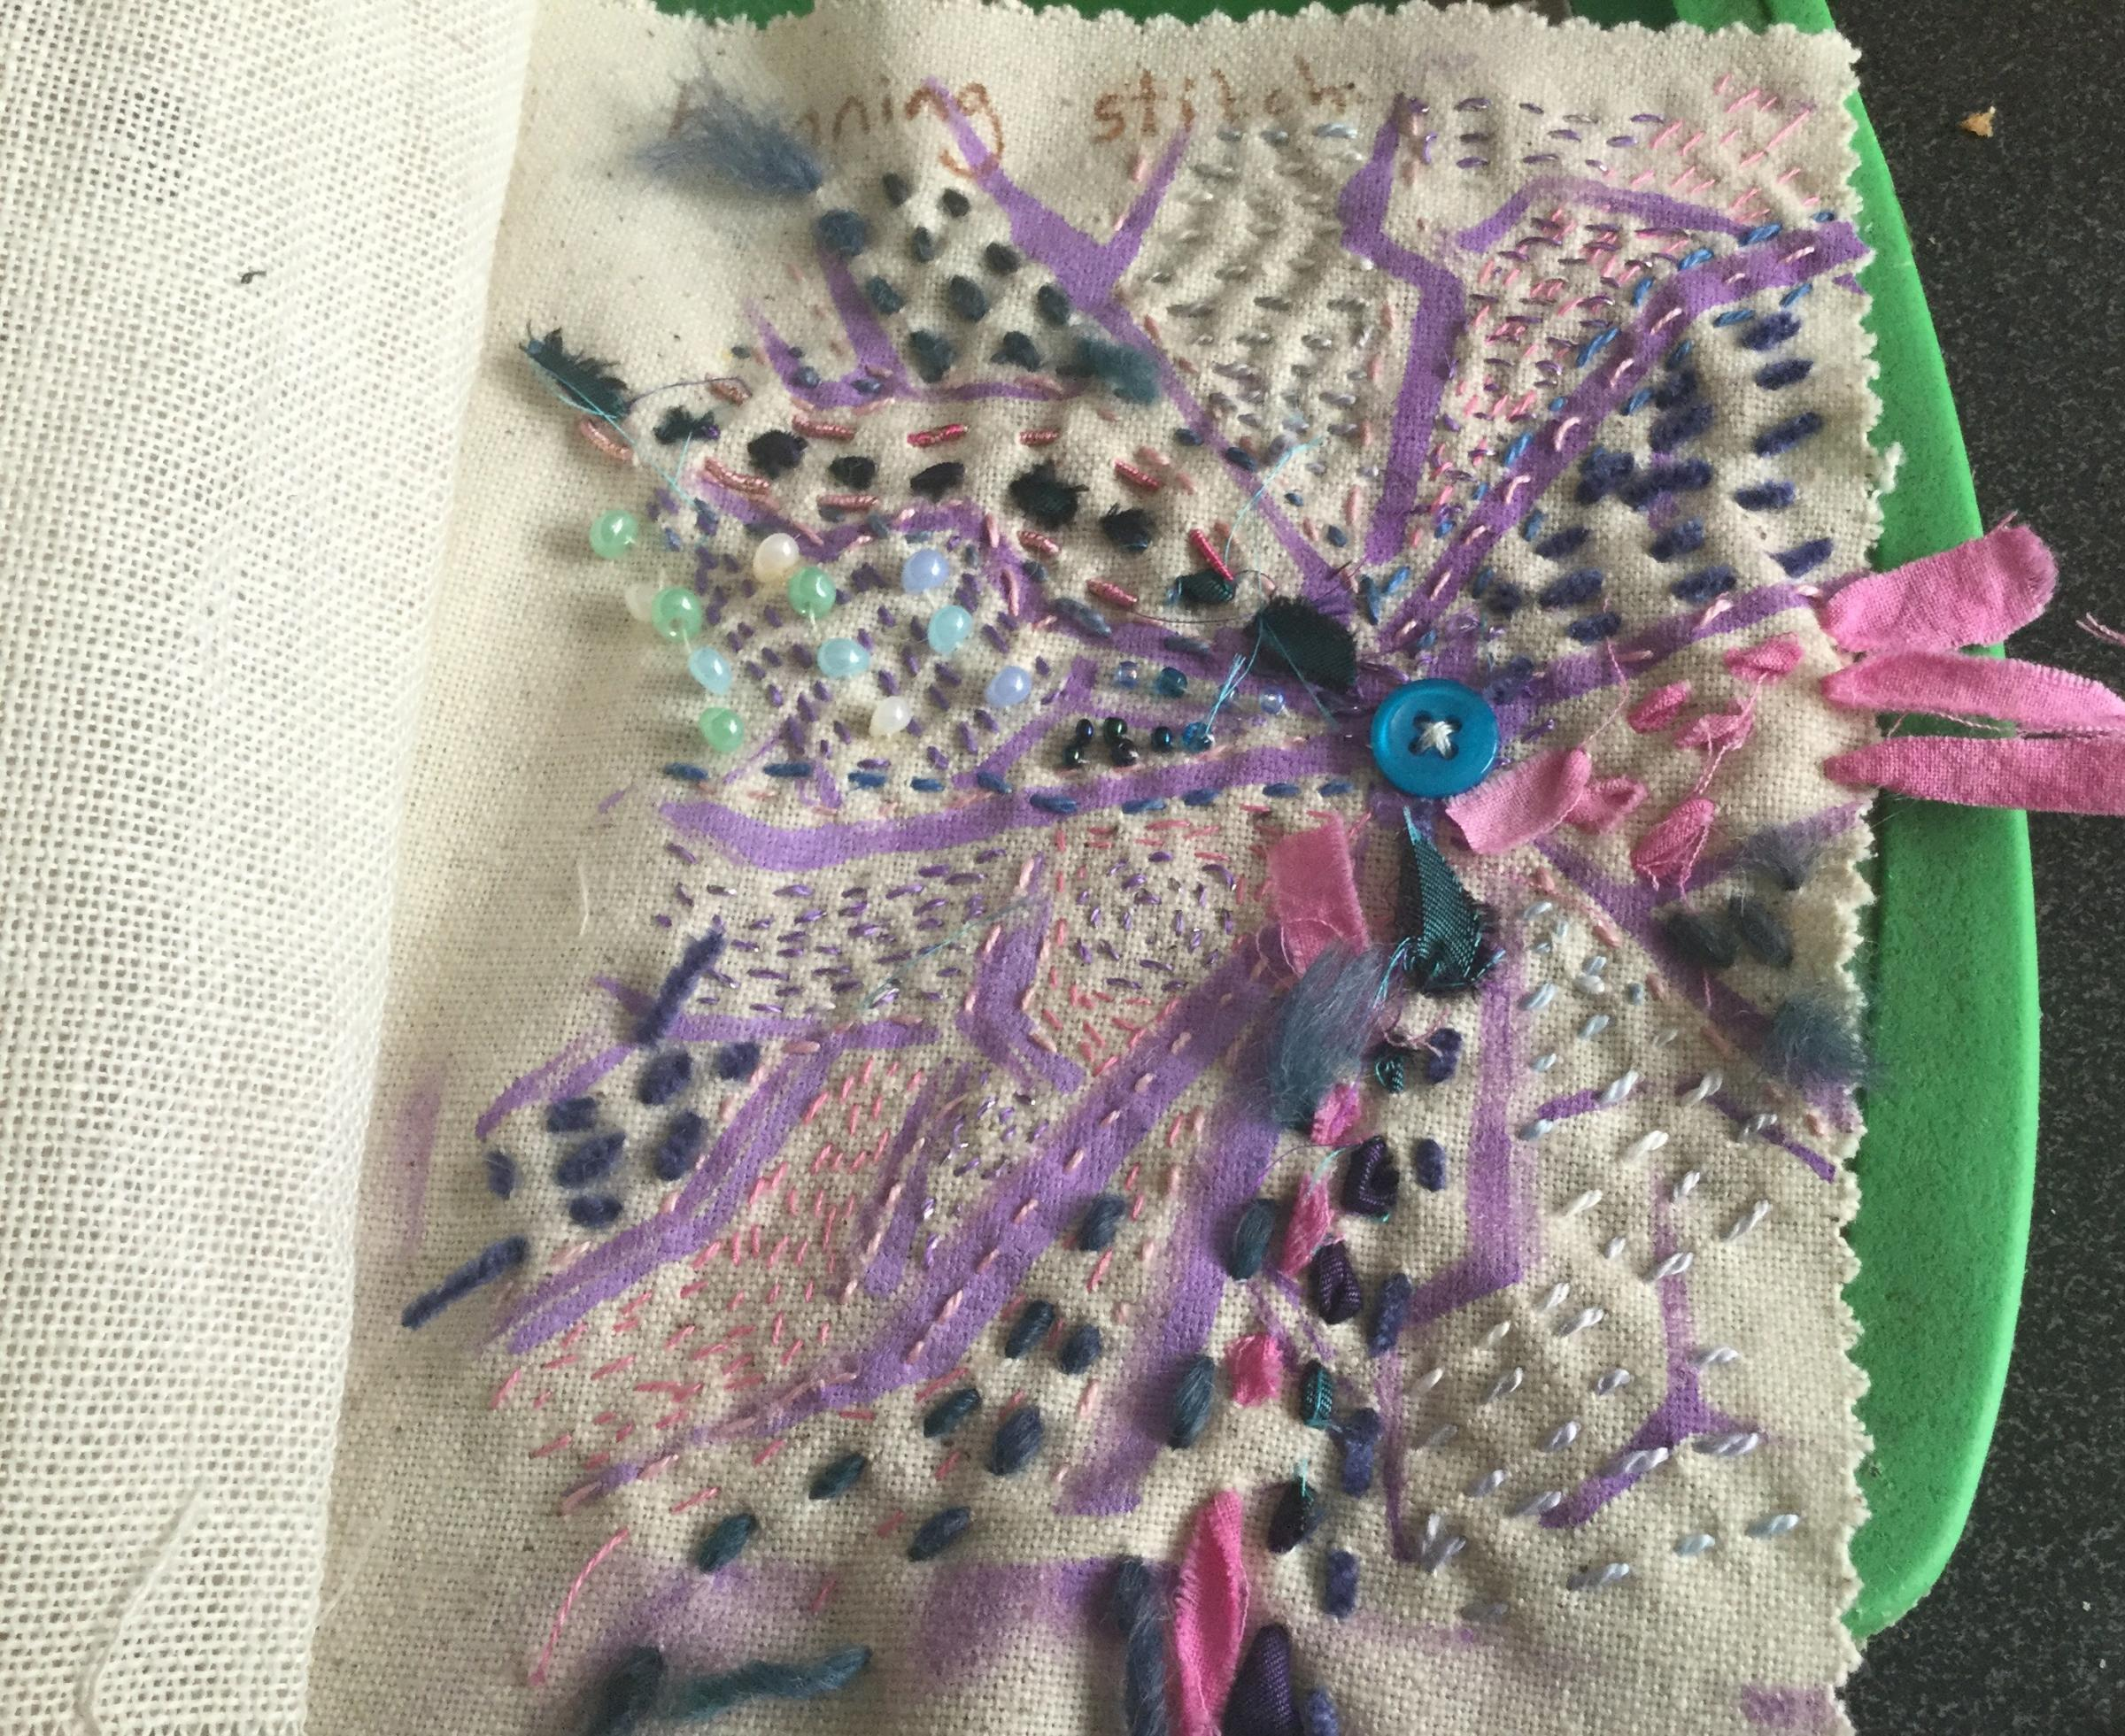 Basildon Embroiderers Guild Meeting